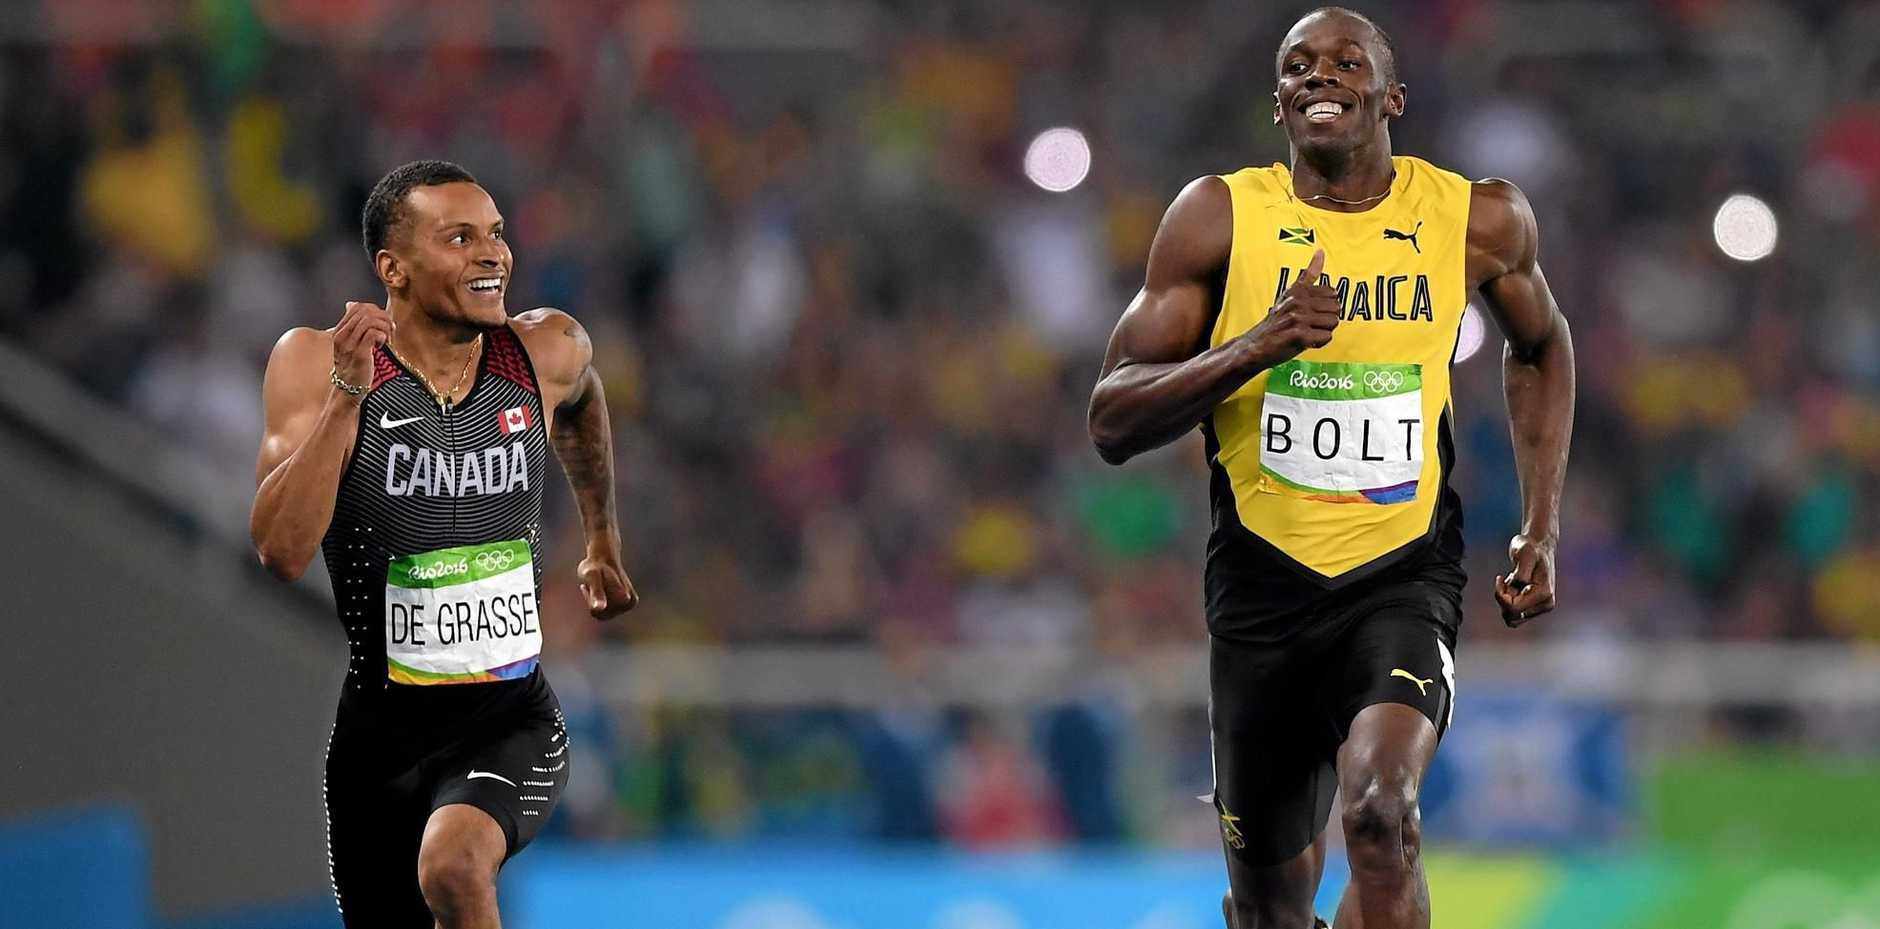 Andre de Grasse of Canada (L) and Usain Bolt of Jamaica react as they cross the line.